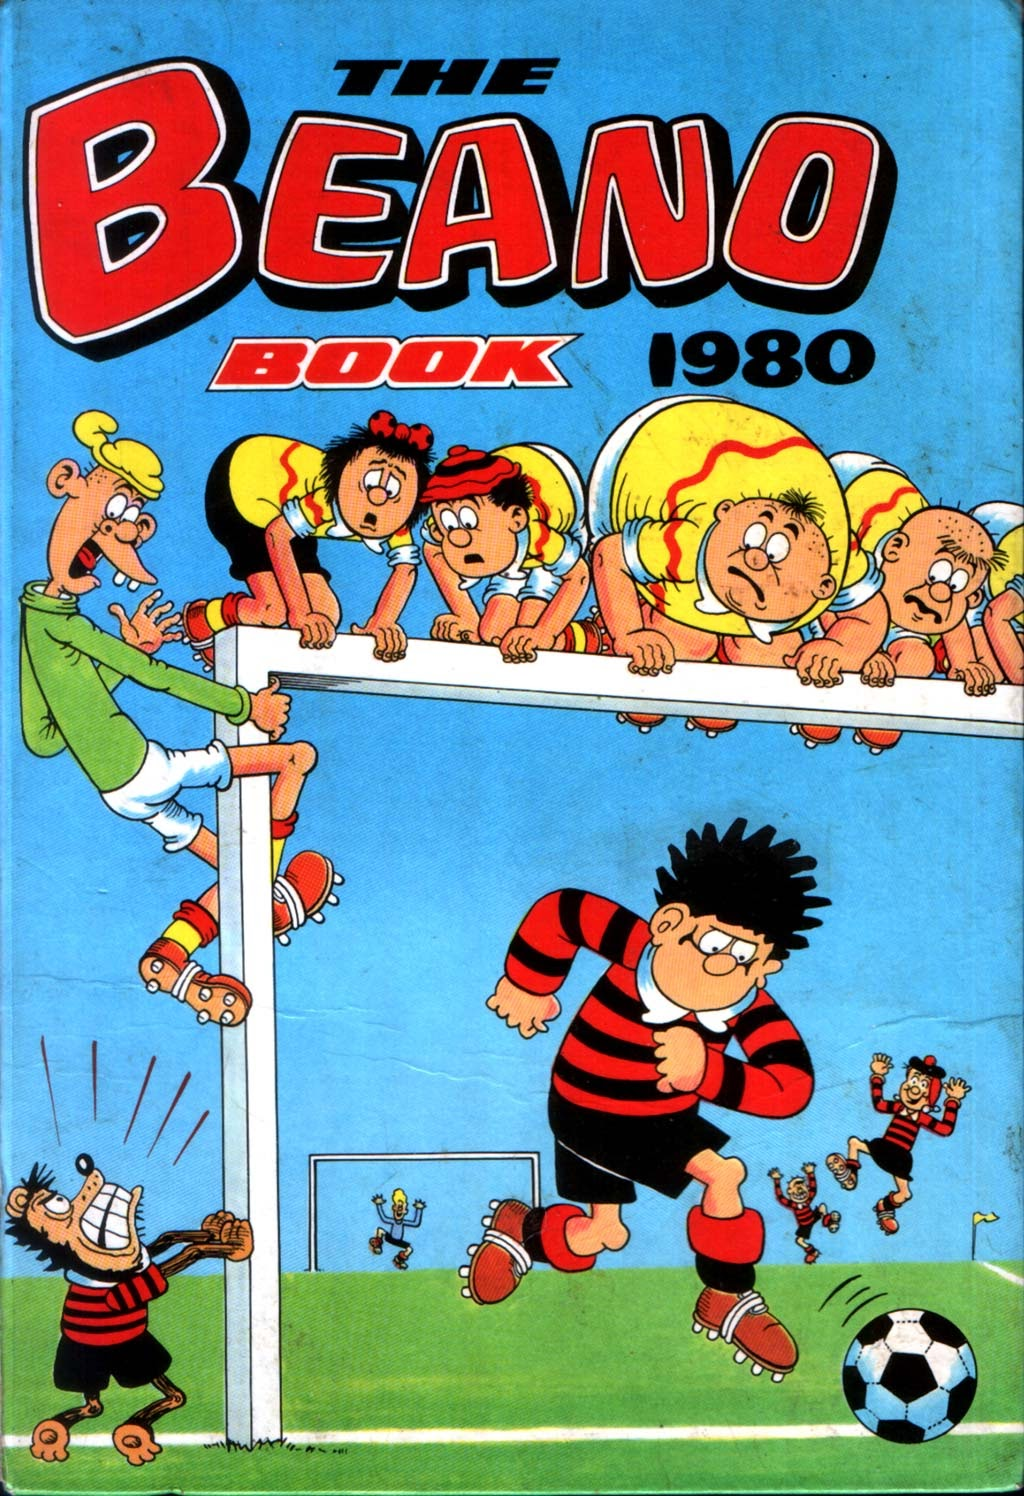 The Beano Book (Annual) 1980 Page 1